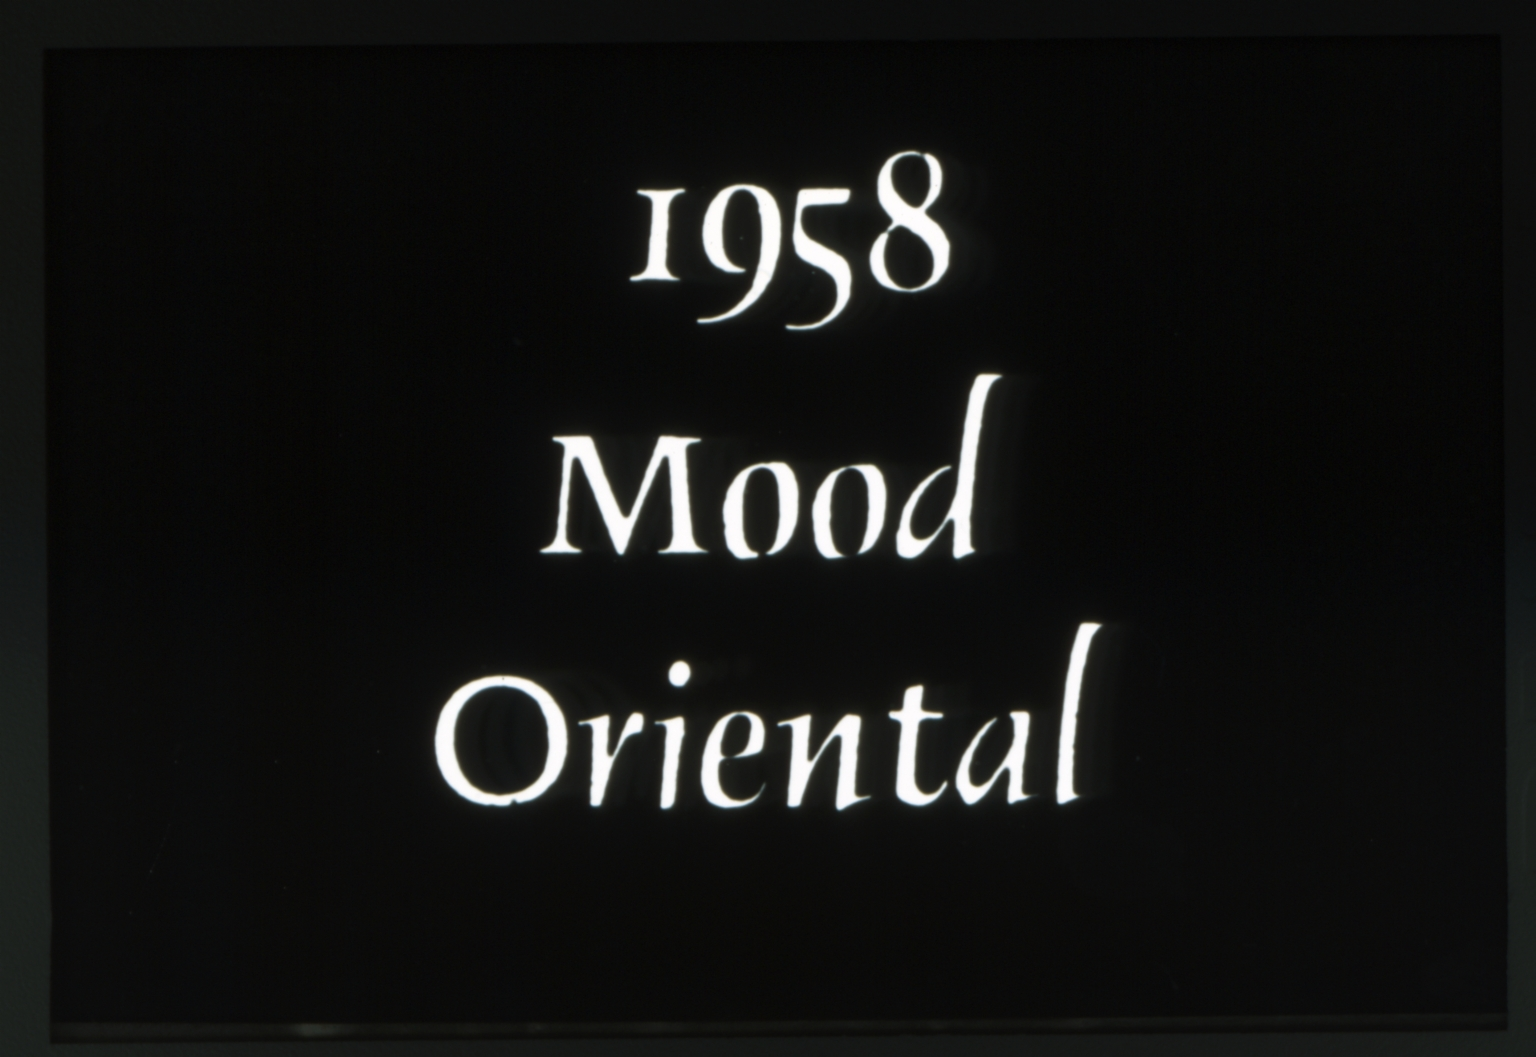 1958 Spring Weekend parade - Mood Oriental